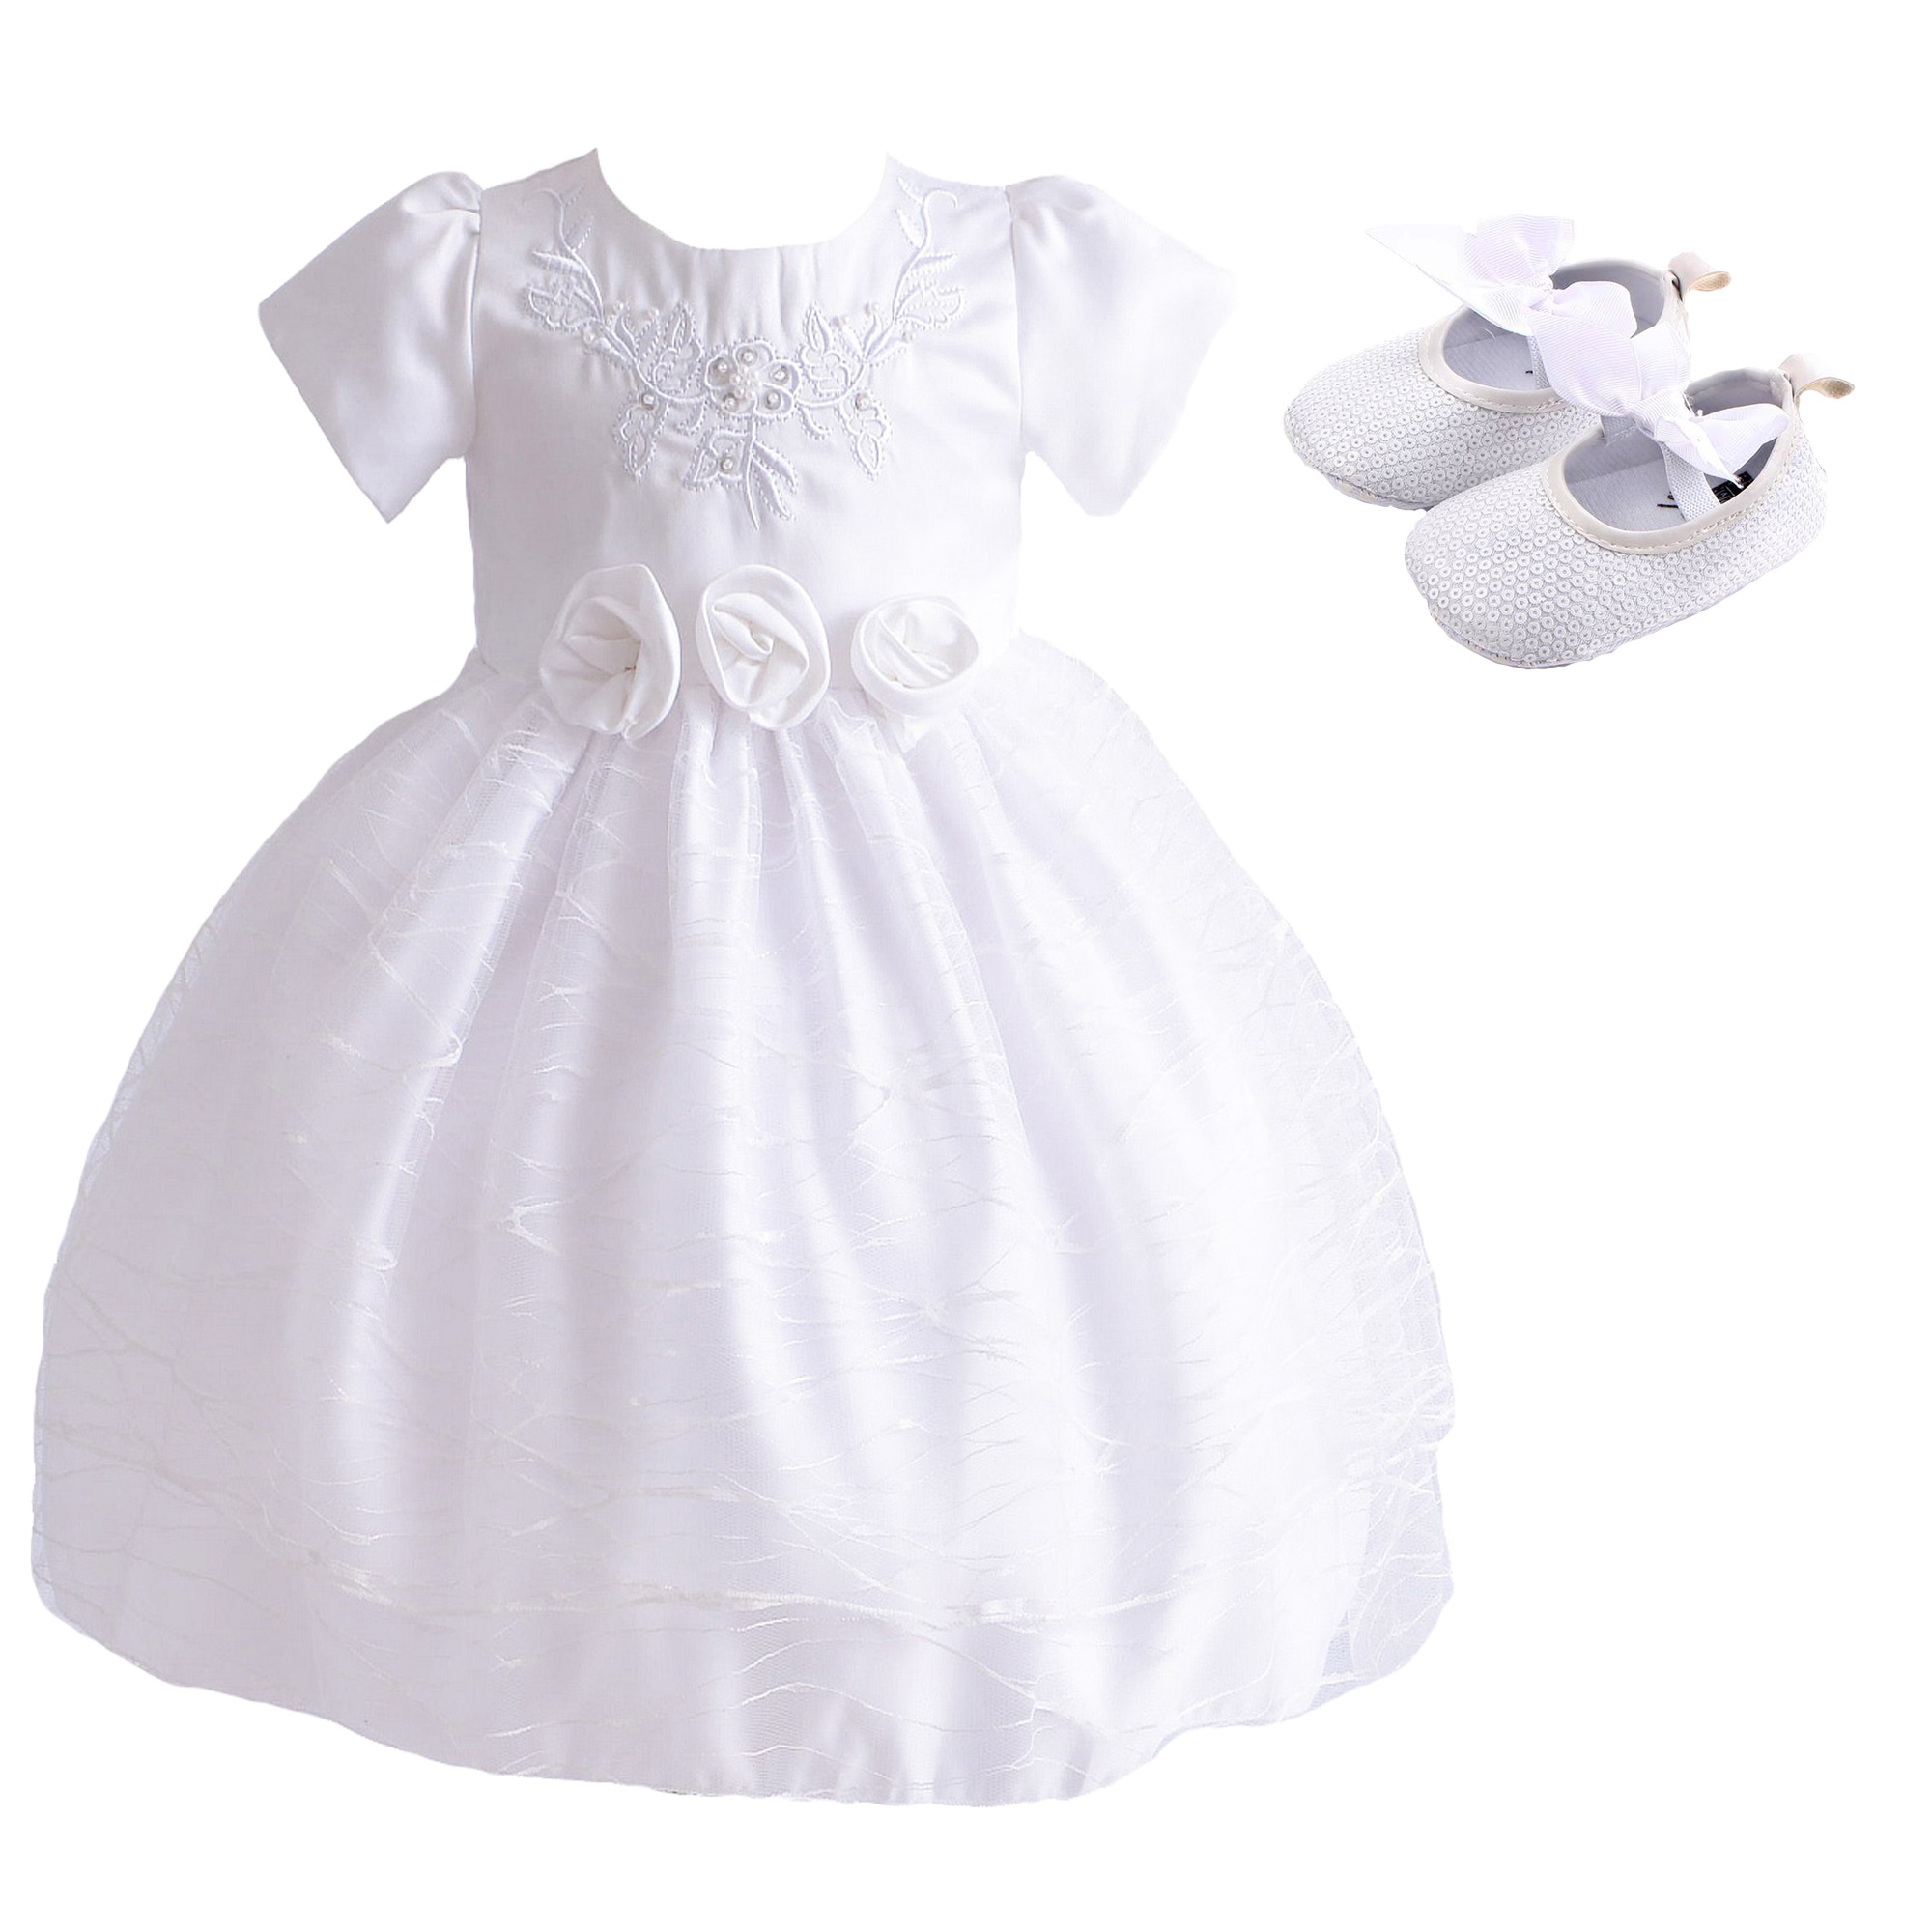 a6f5d3eadffa5 Baby Girls White Christening Dress and Shoes